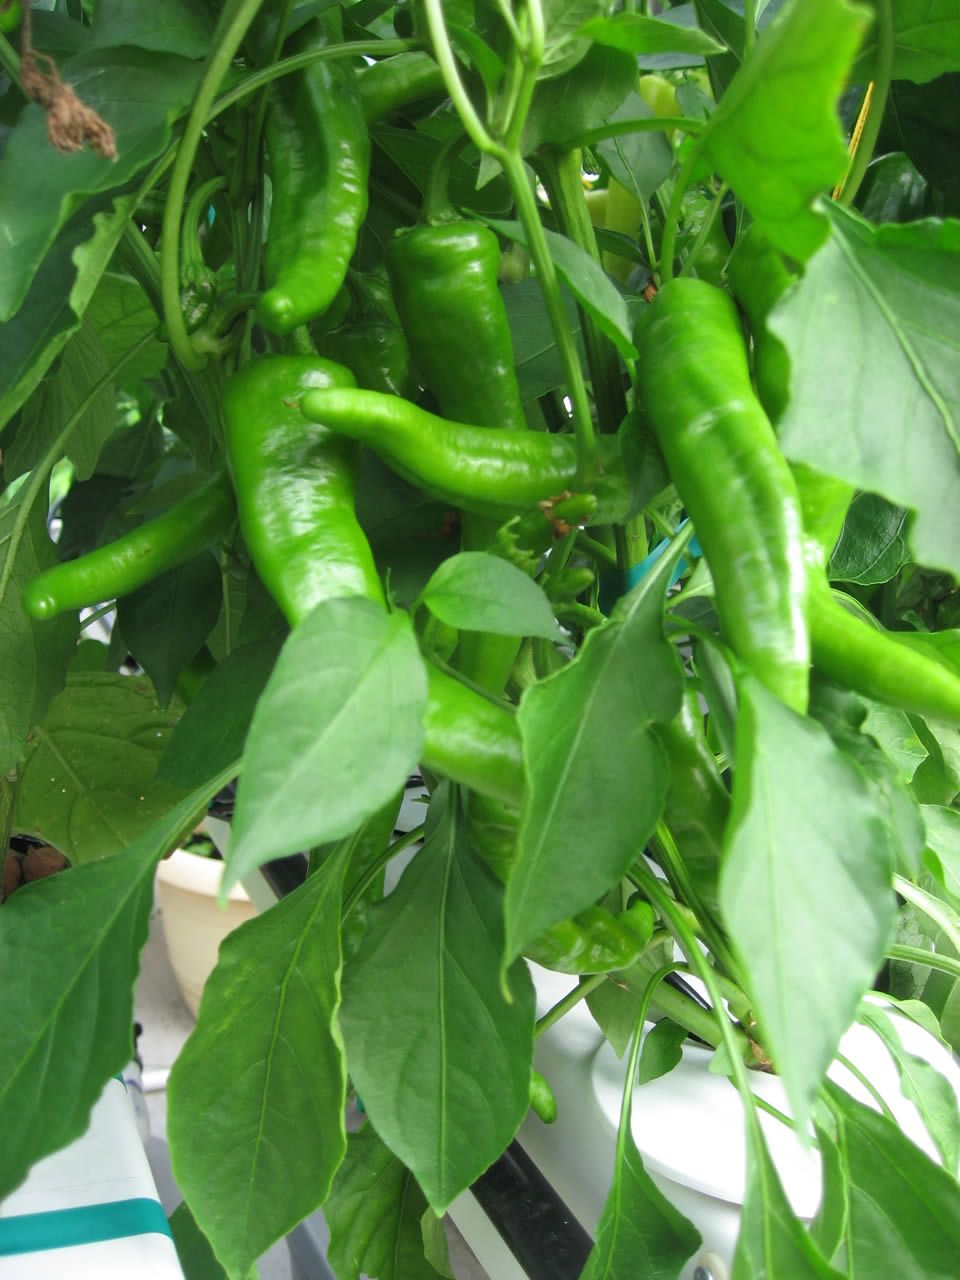 Growing Chillies How To Grow Chili Peppers From Seed 400 x 300